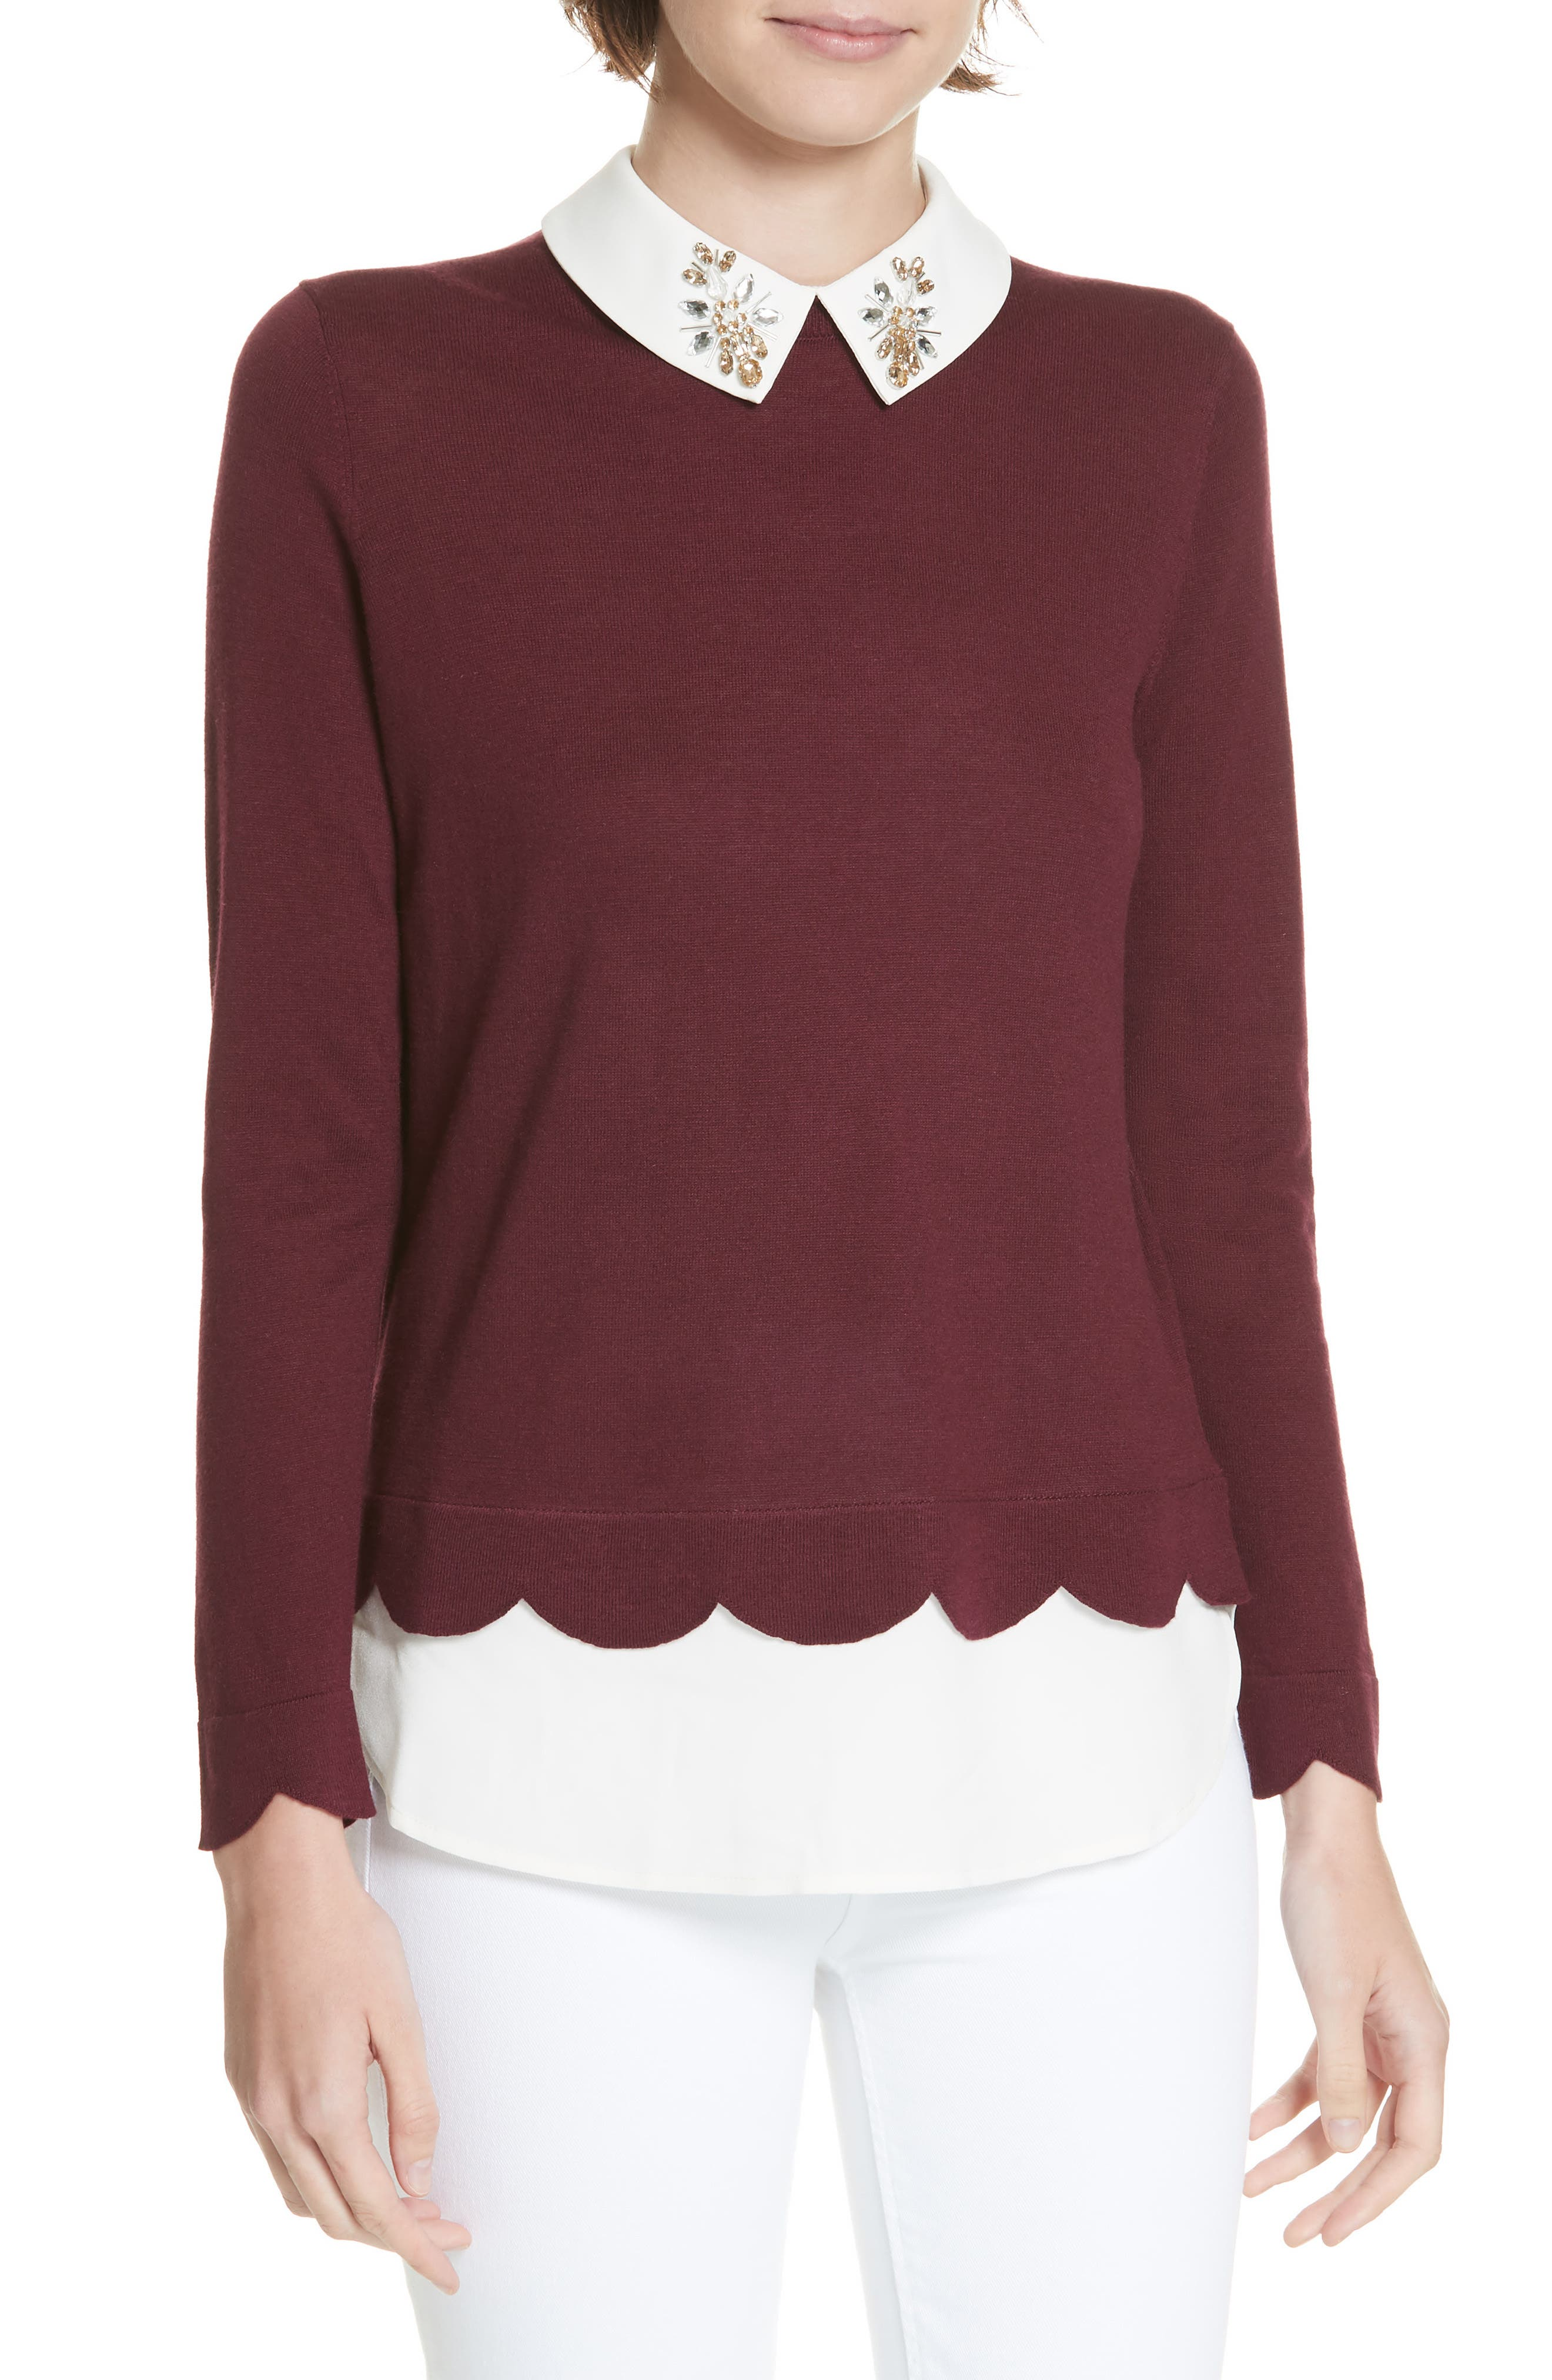 Suzaine Layered Sweater,                             Main thumbnail 1, color,                             MAROON